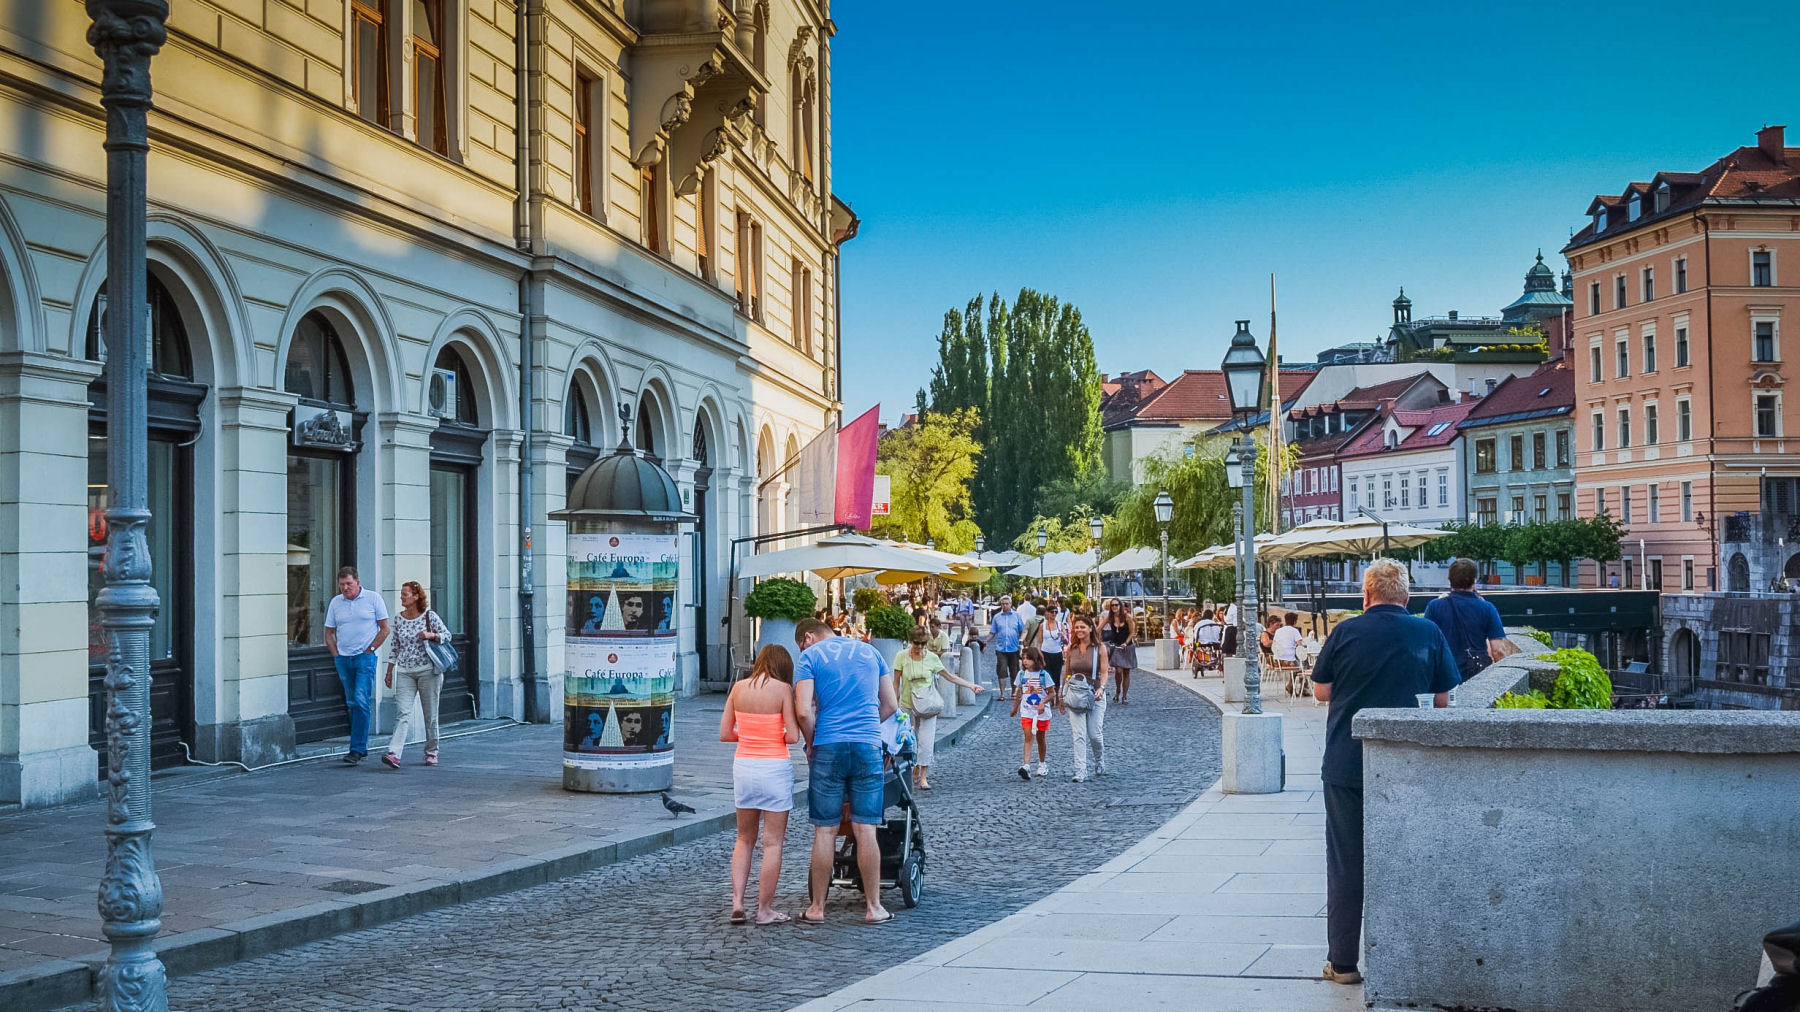 Take a walk alongside the Ljubljana River with restaurants, cafés and shops